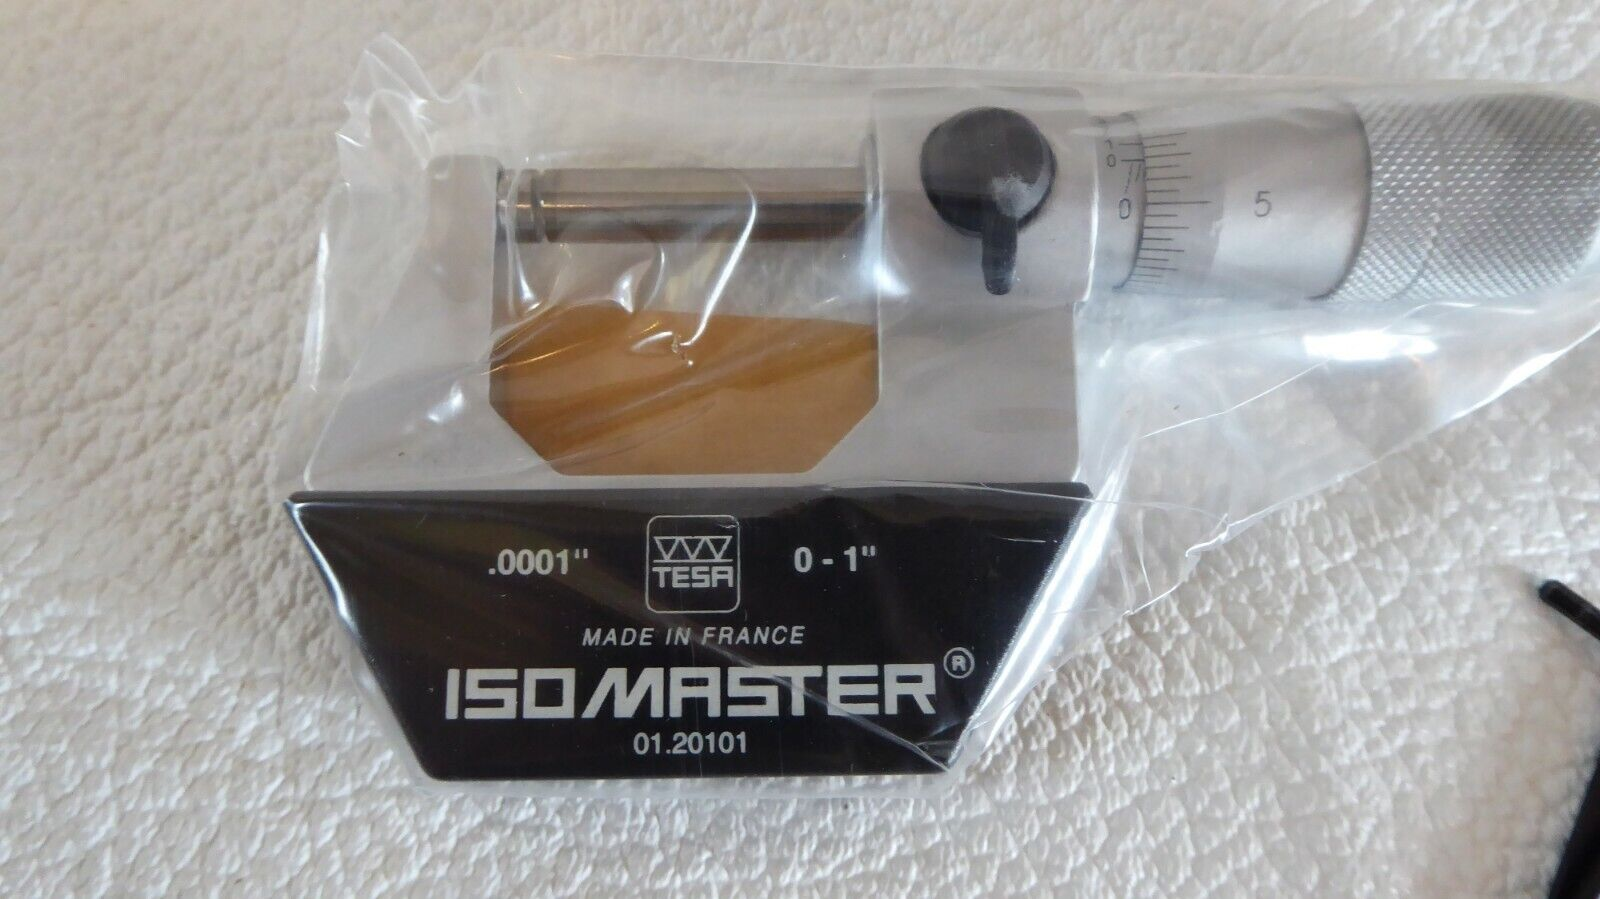 "TESA / Brown & Sharpe 0-1"" micrometer, 01.20101"